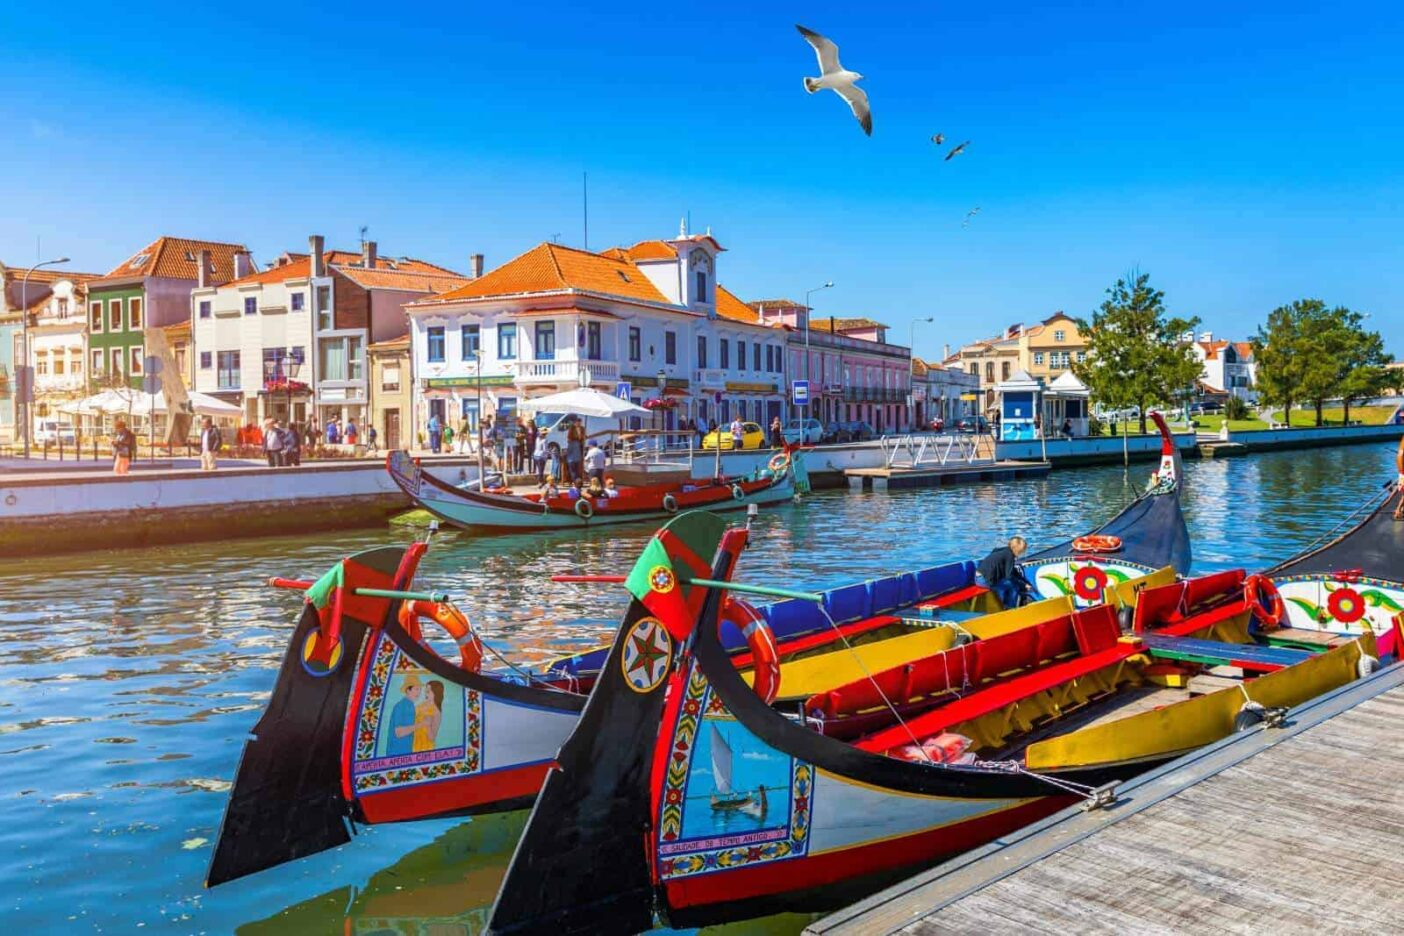 Traditional Portuegese canal boats - bright and colourful boats moored in an Aveiro canal.